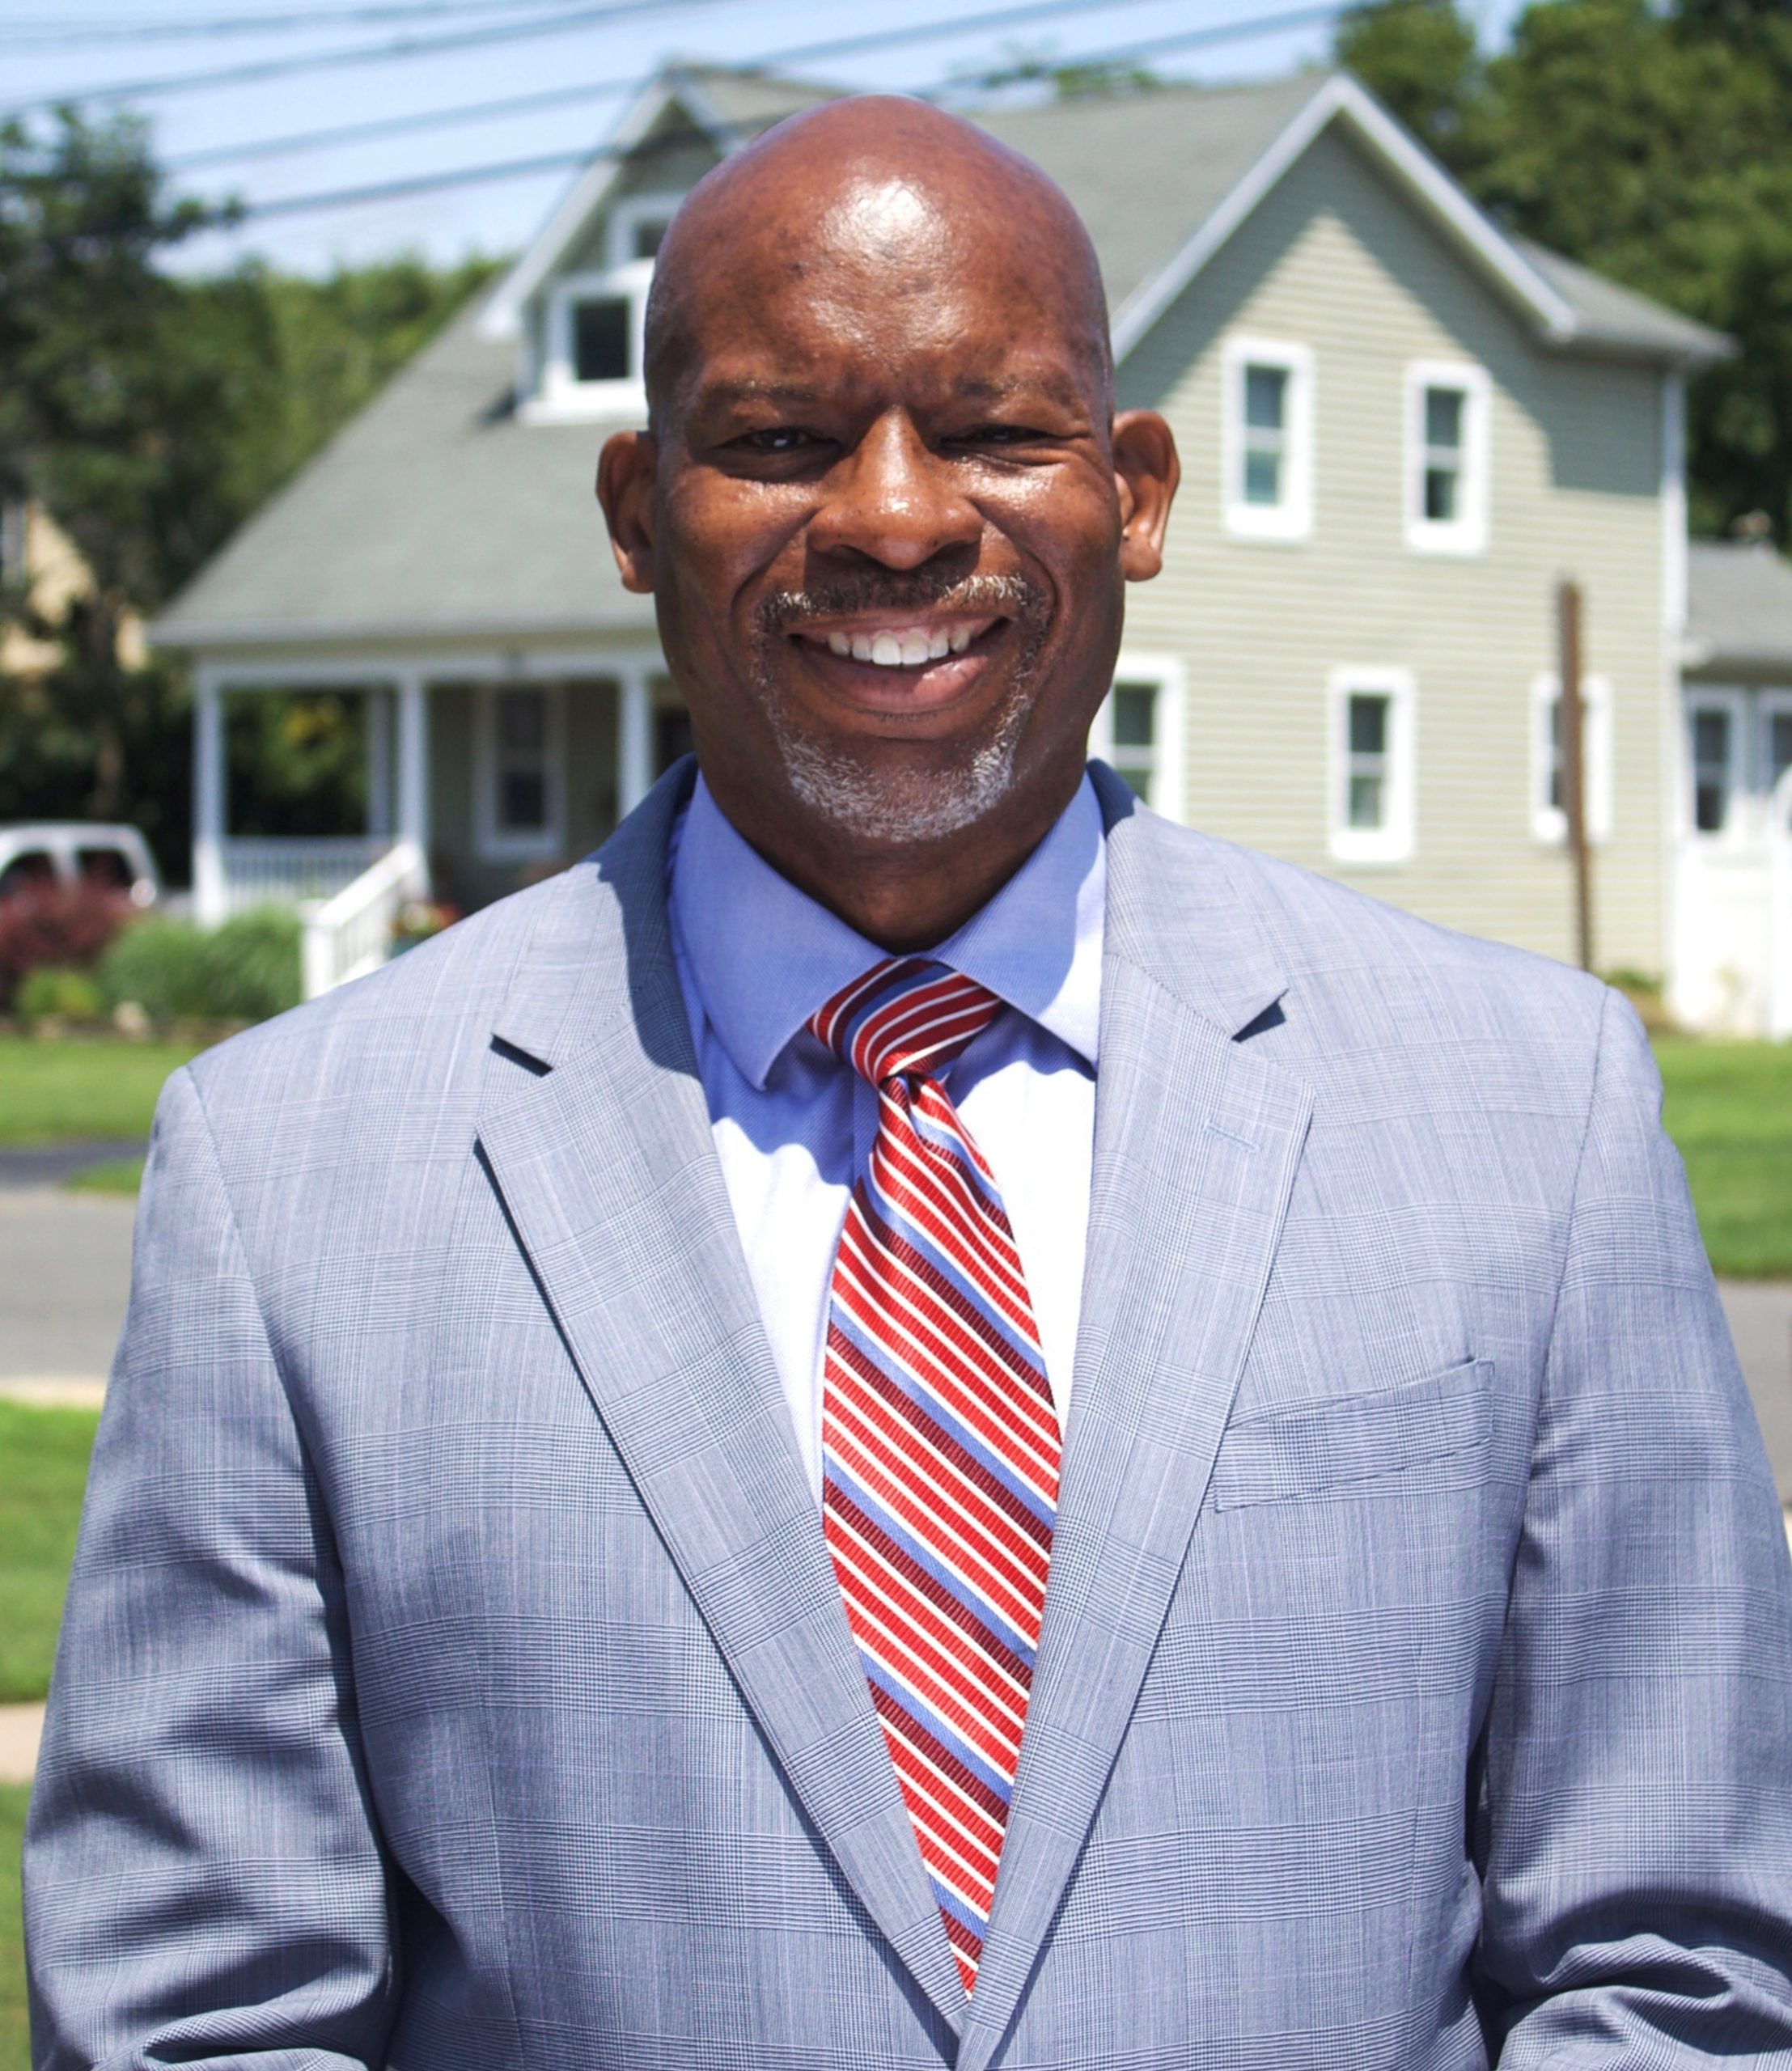 Keith Saunders has been named the assistant principal of Southampton High School.